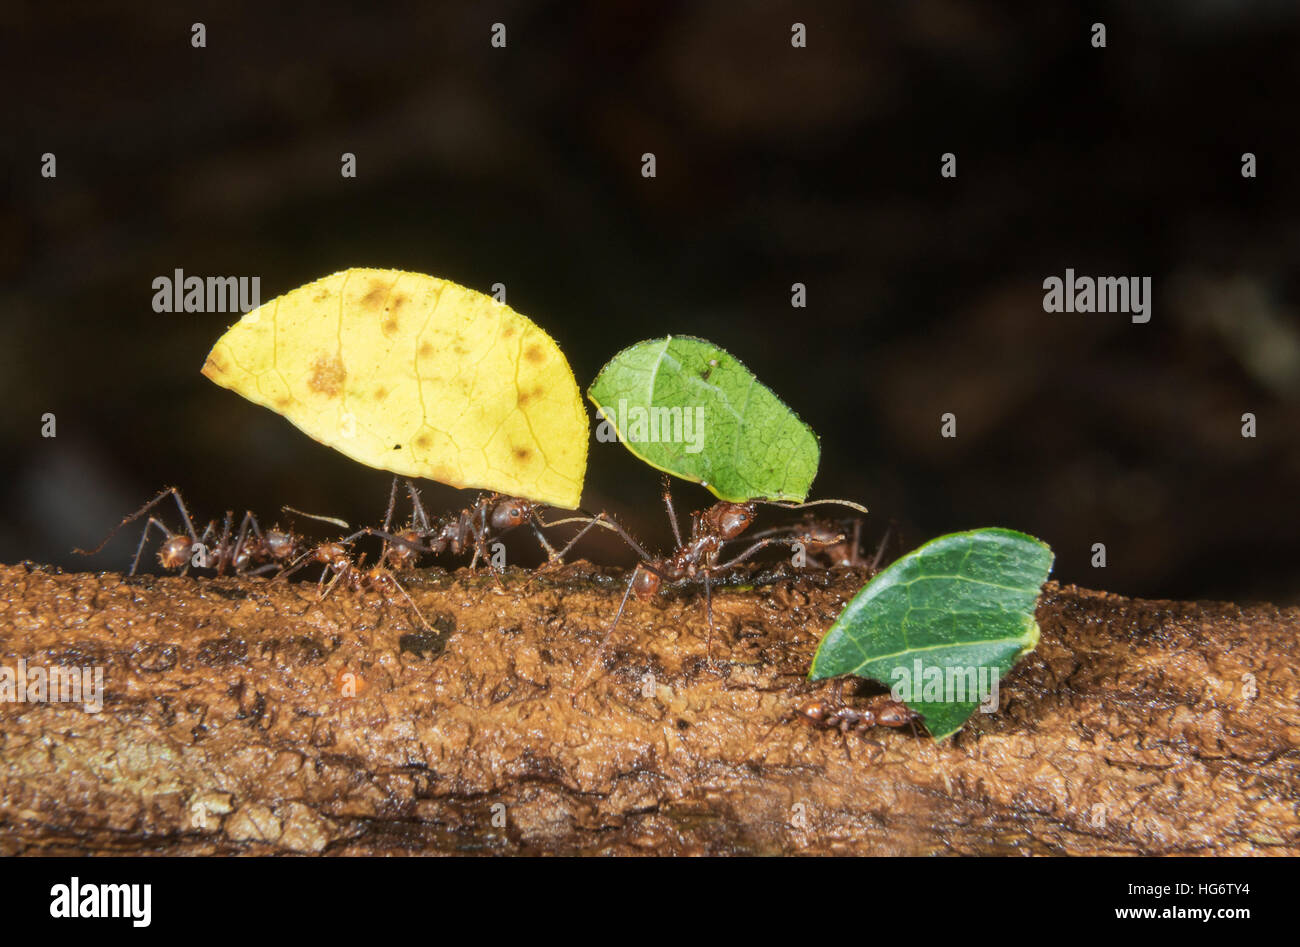 Leafcutter ants (Atta colombica) carrying pieces of leaves, Belize, Central America - Stock Image